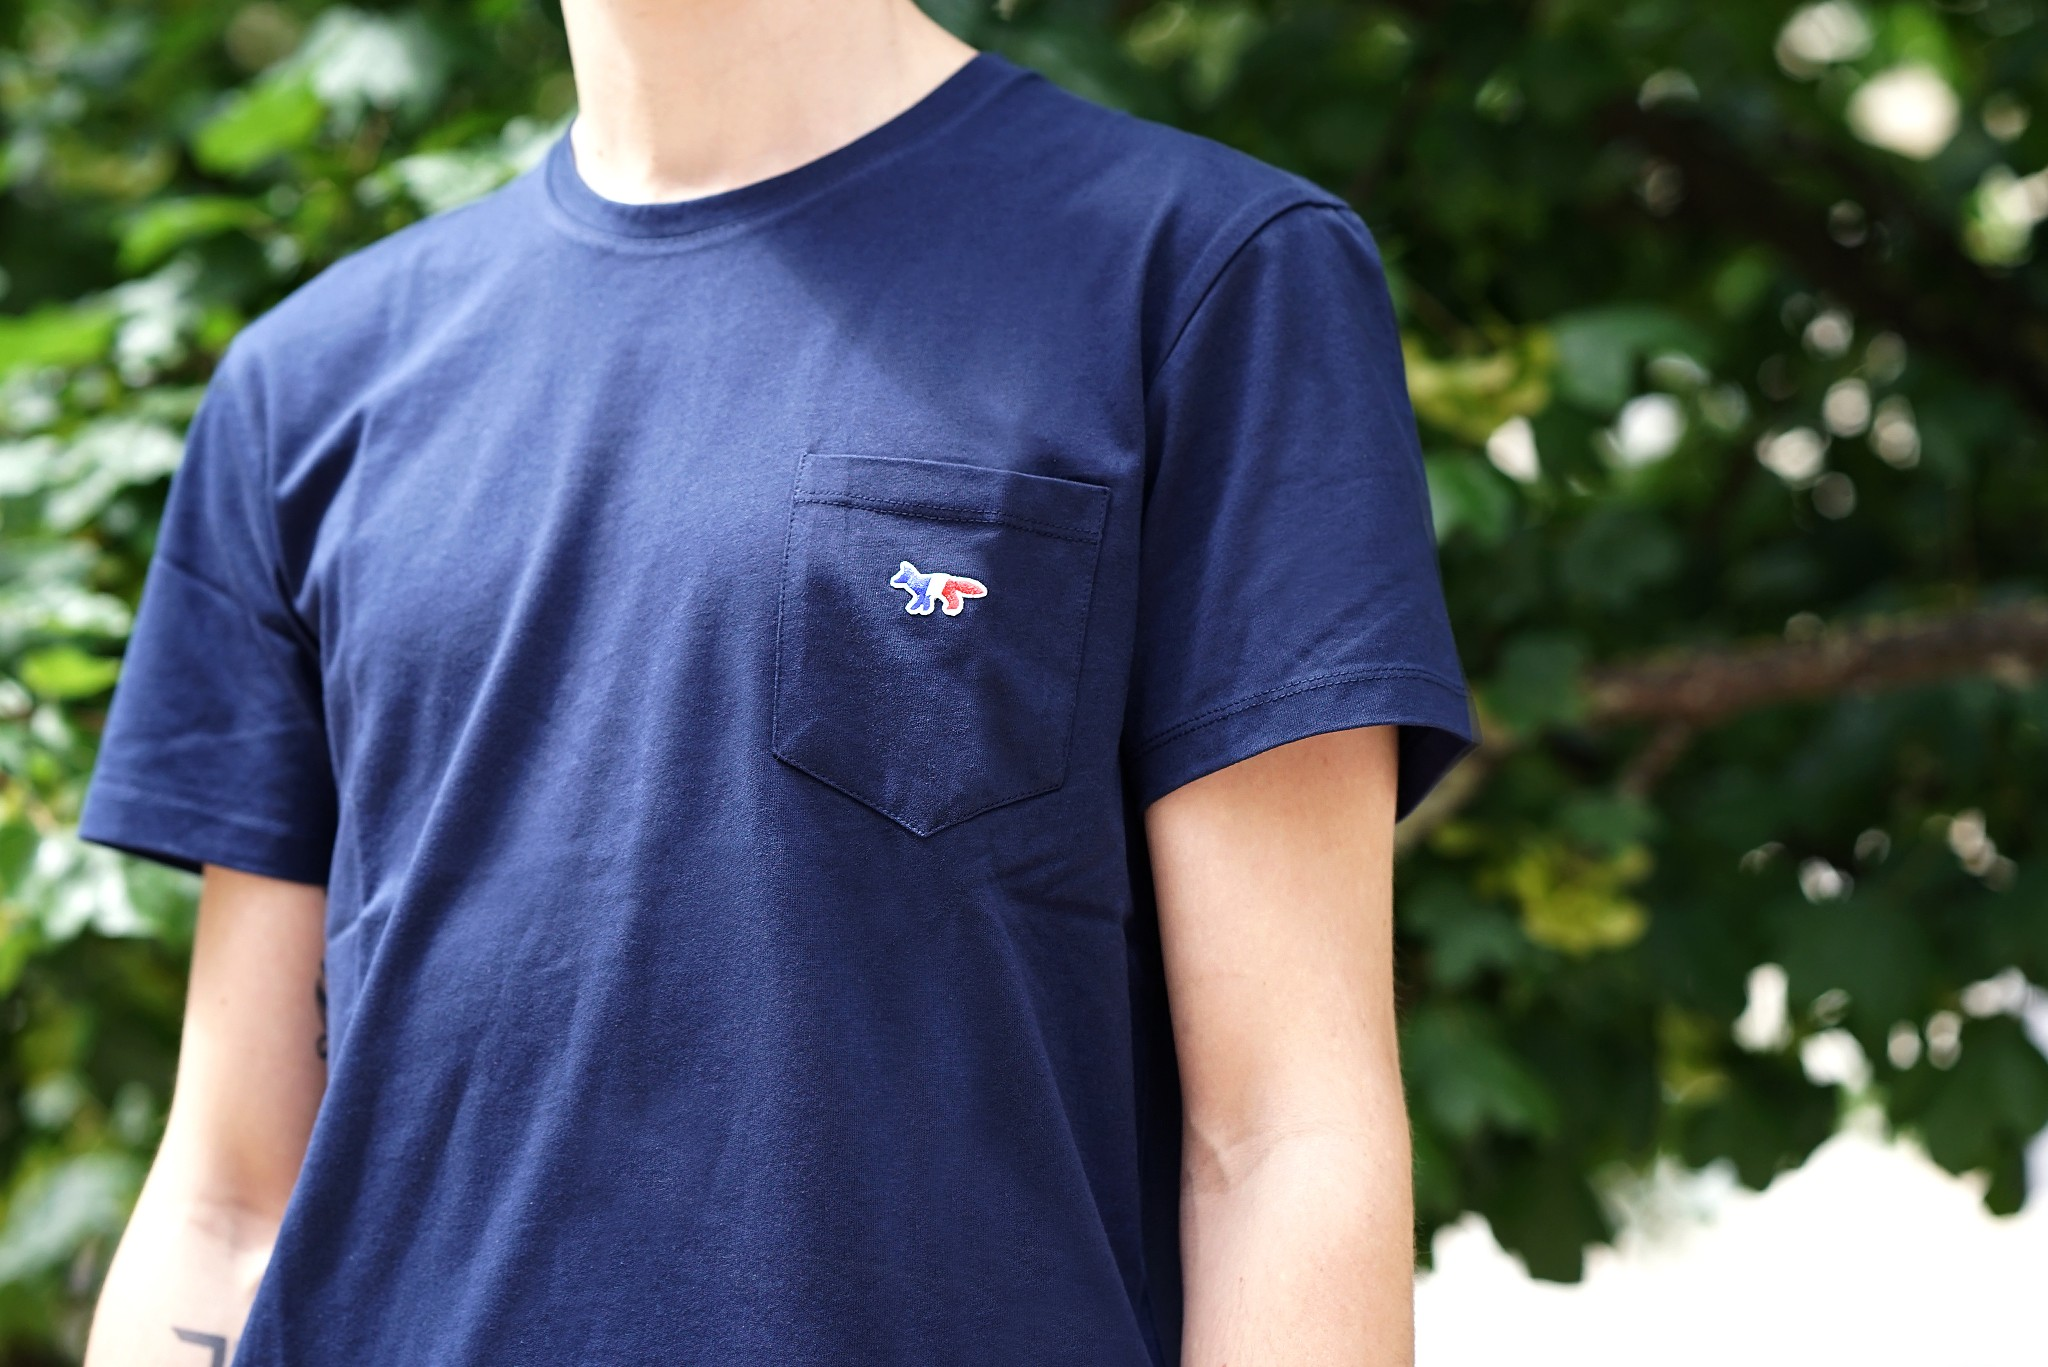 maison Kitsune Tees back in stock